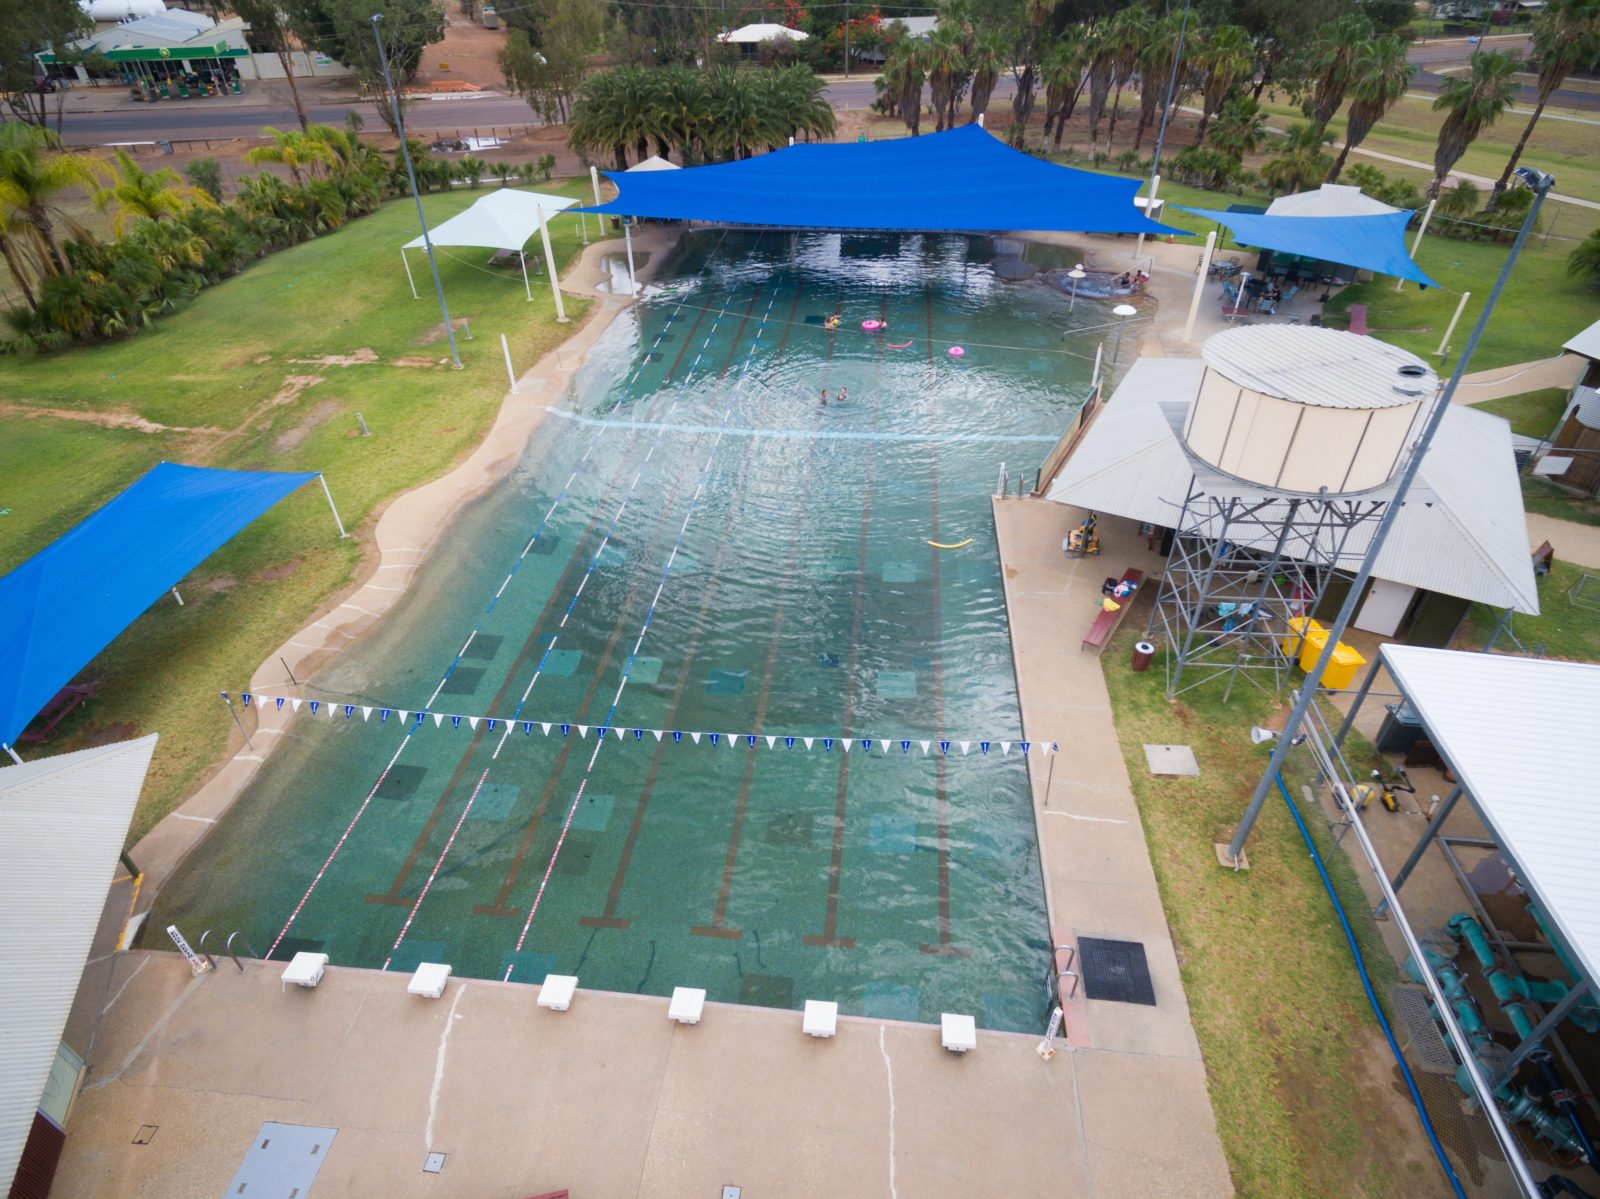 A view of the Blackall Aquatic Centre taken from the air.